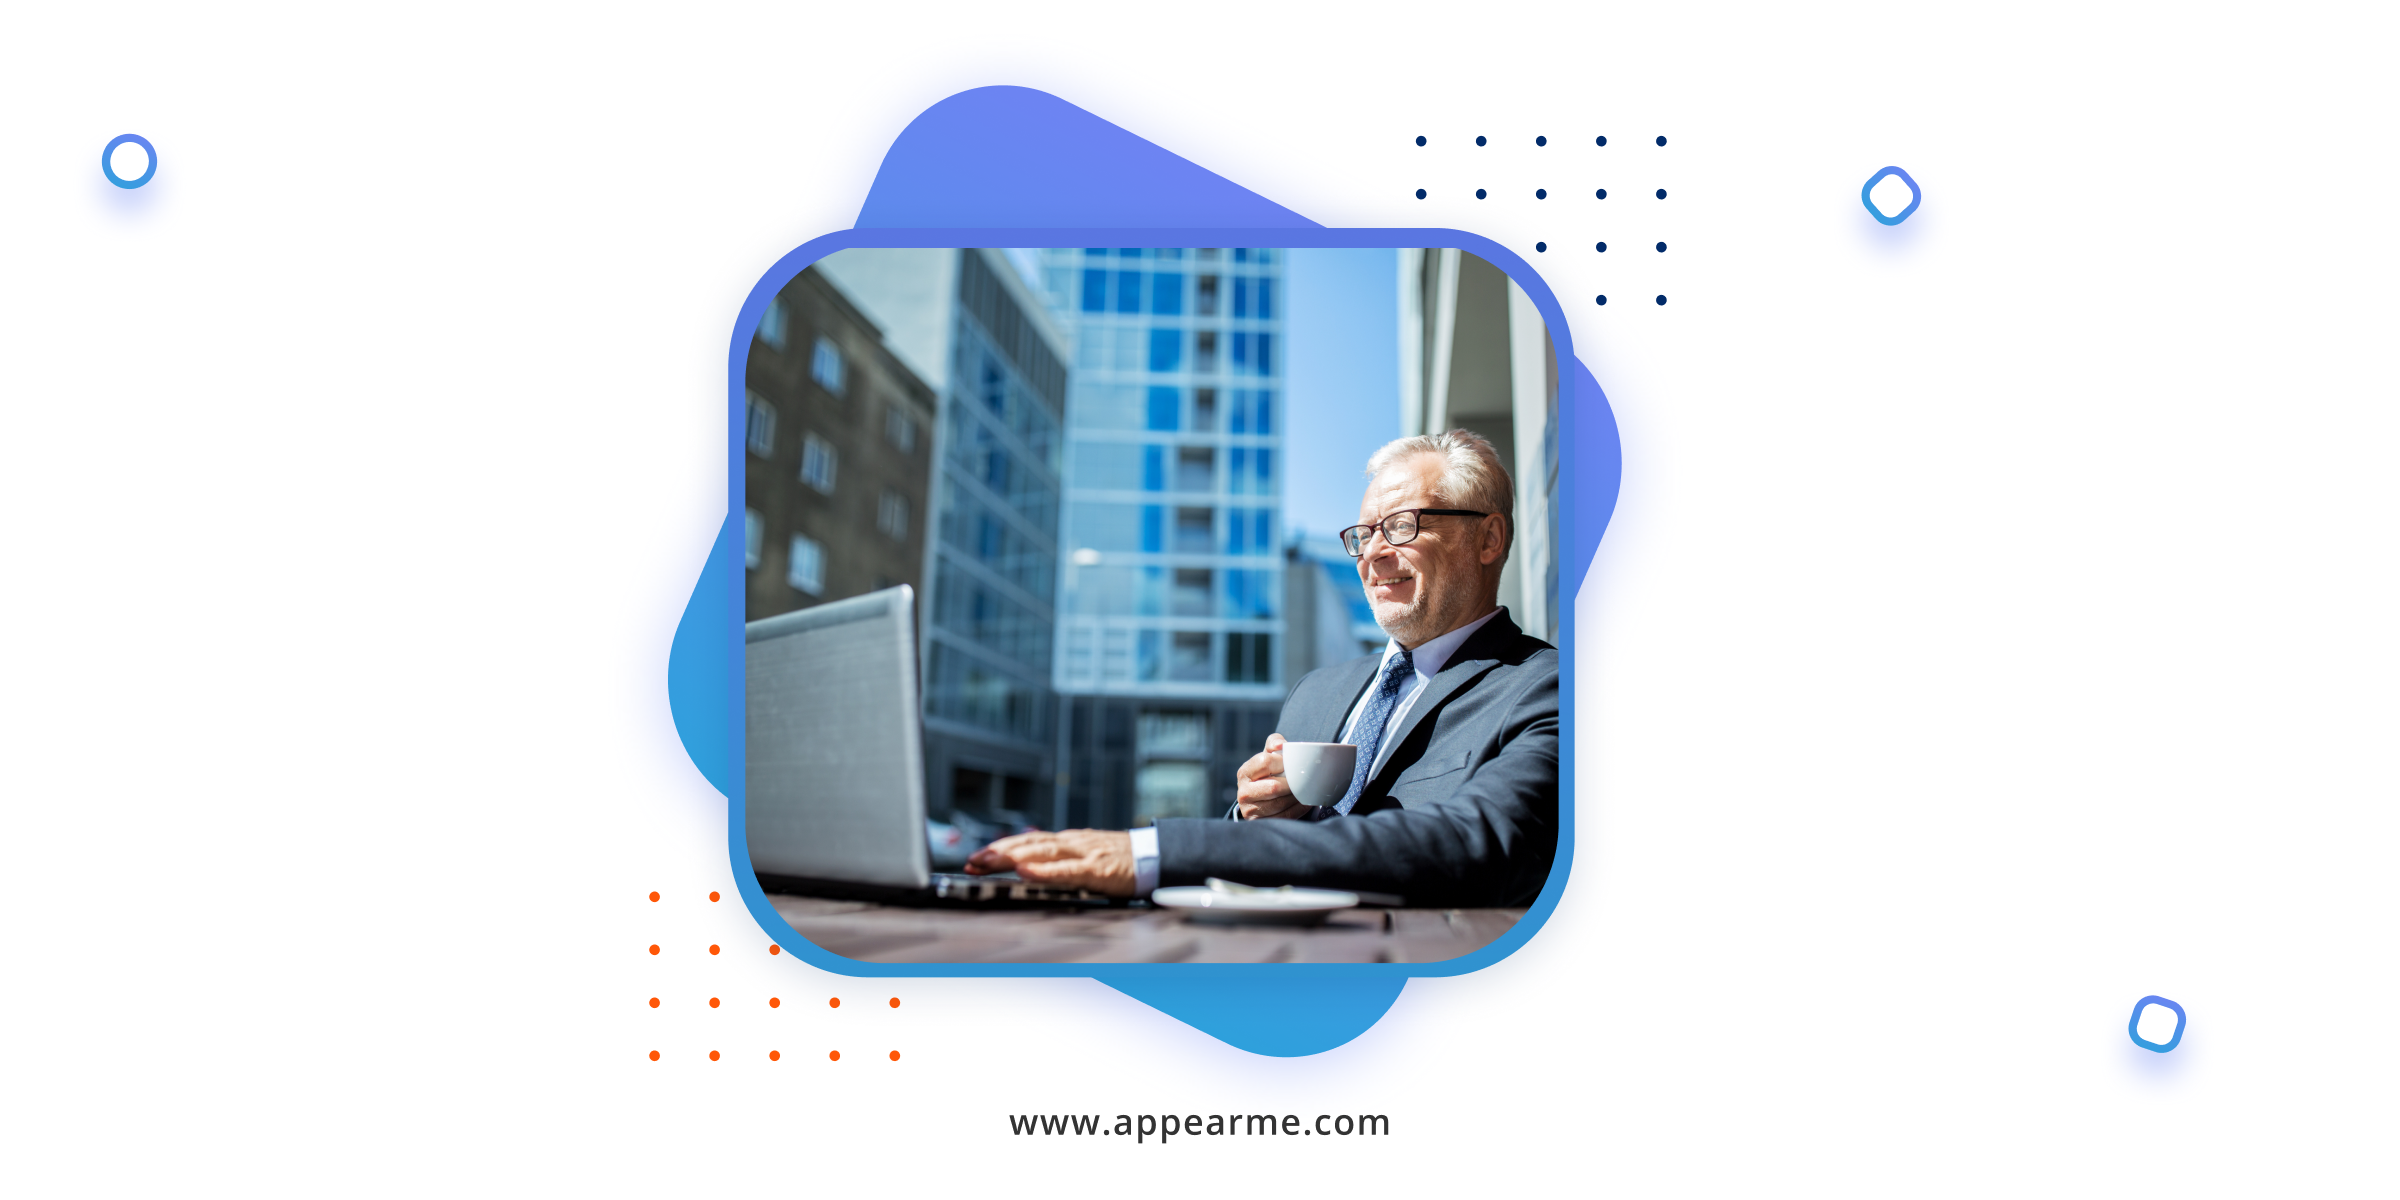 Connect with an Appearance Attorney in 3 Easy Steps